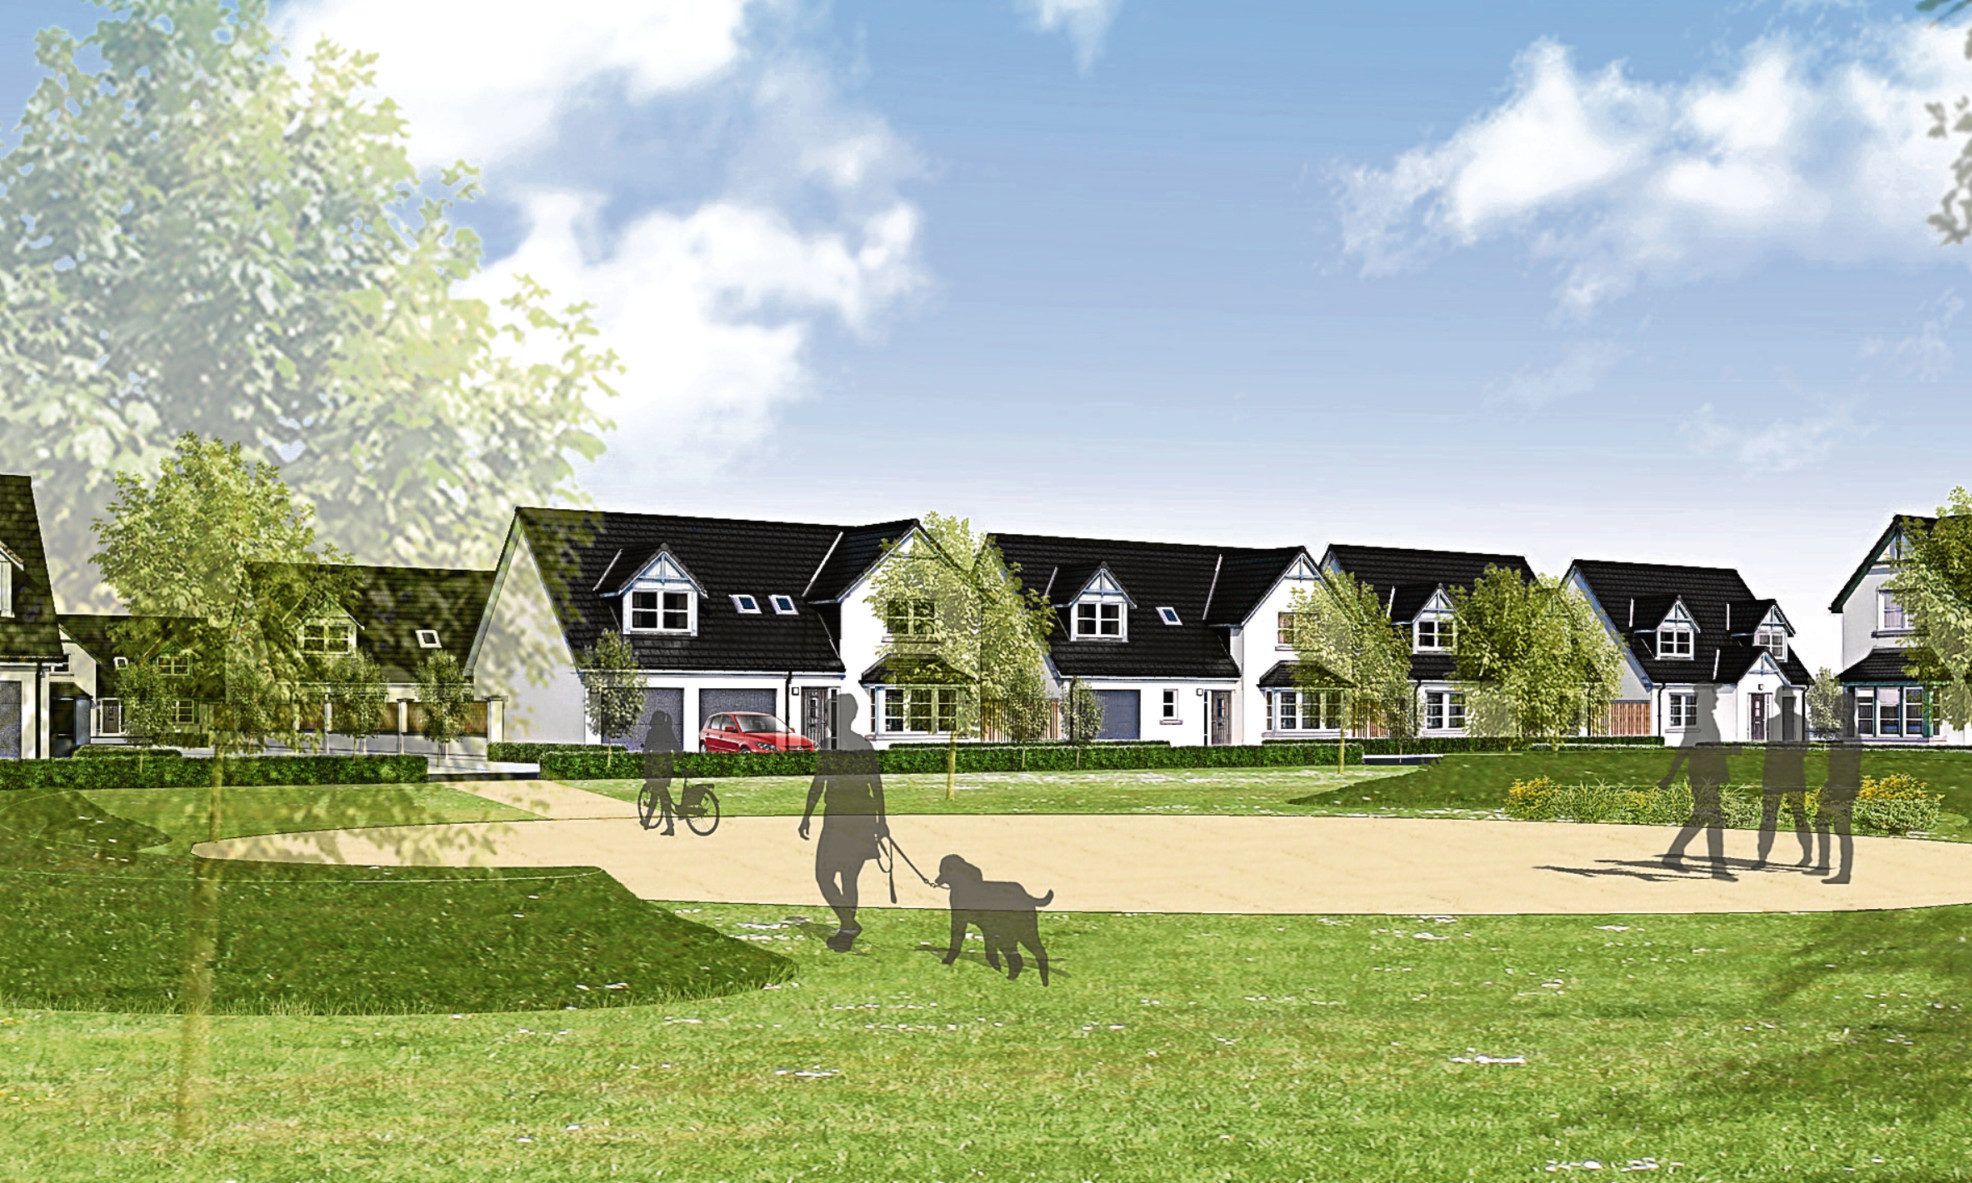 The proposals for phase two of Balgillo Heights have been refused by councillors.